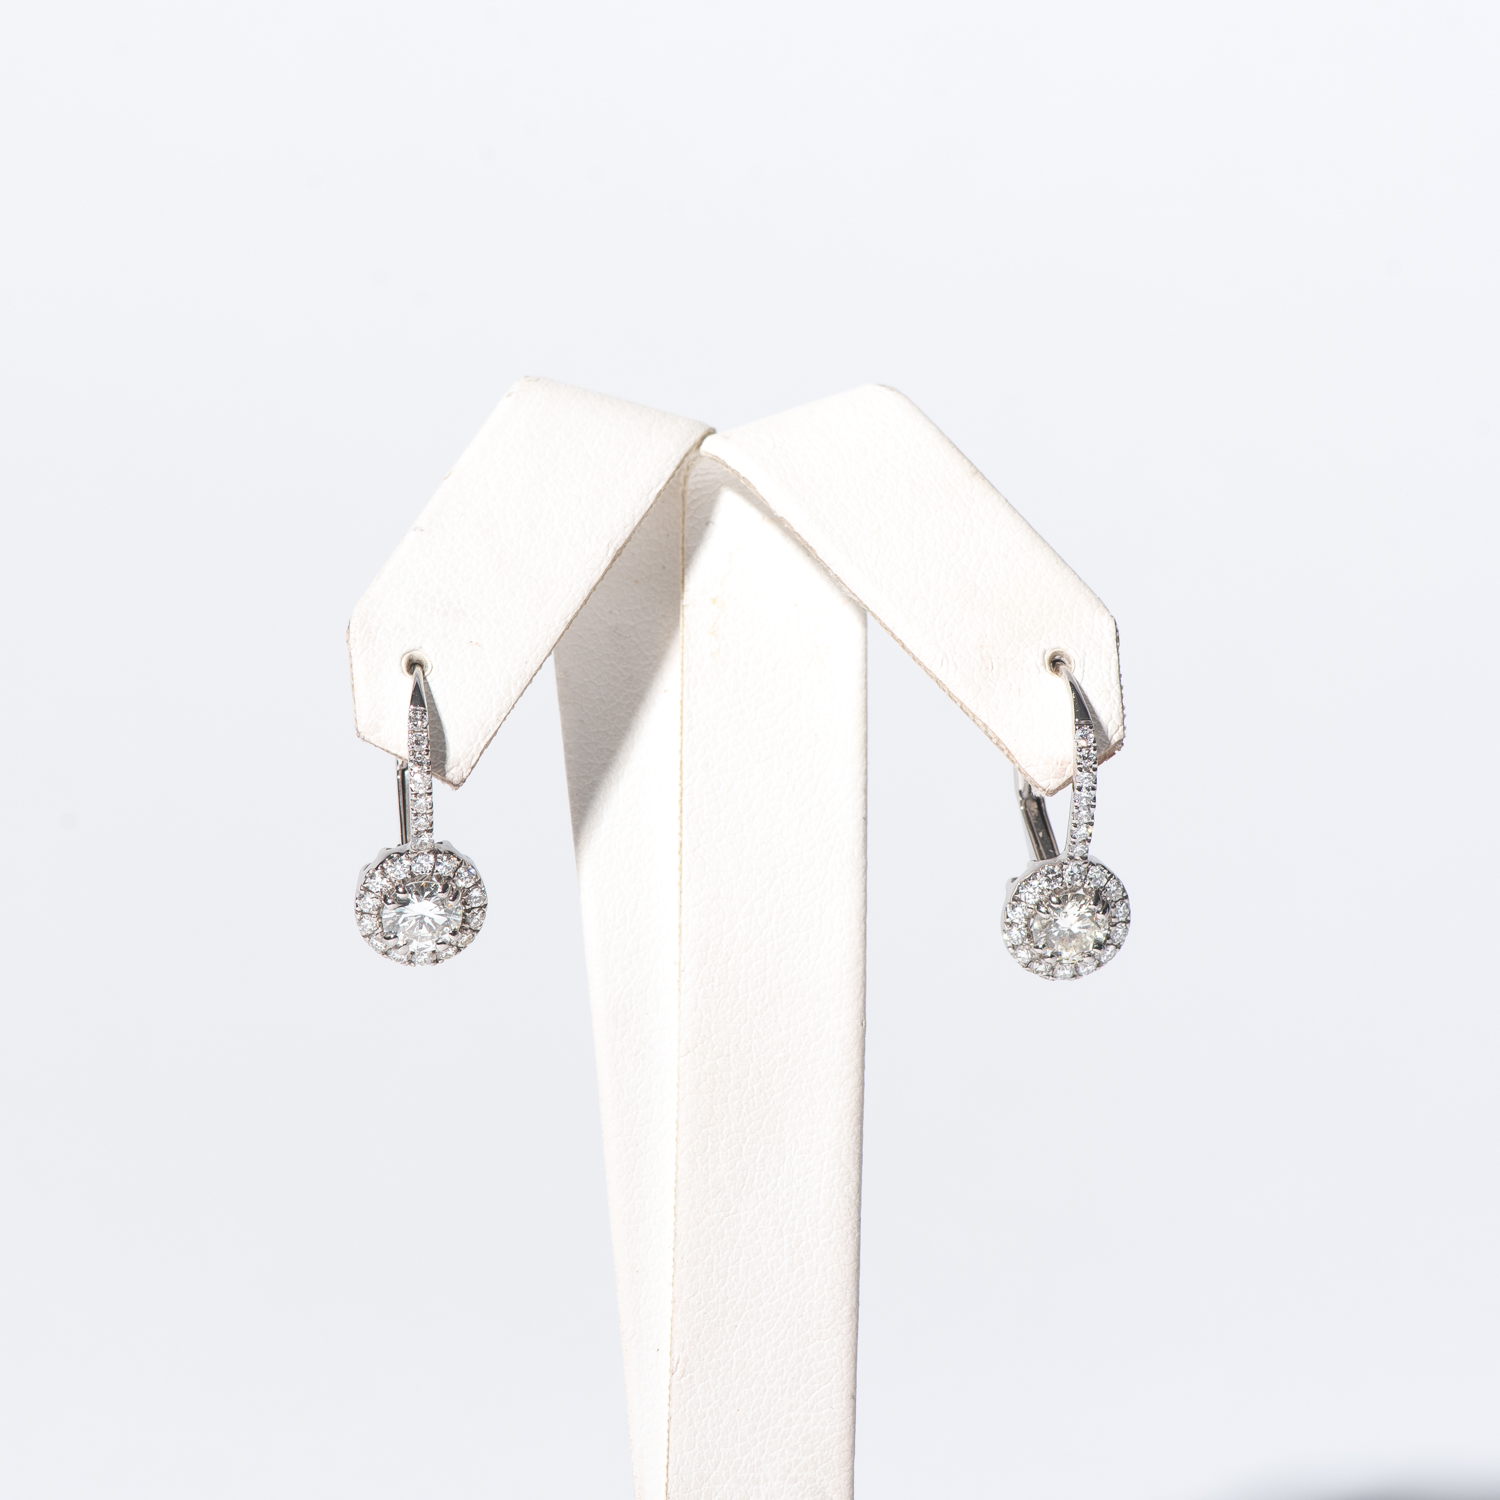 Design Twenty. - This is dummy text to describe the earrings.